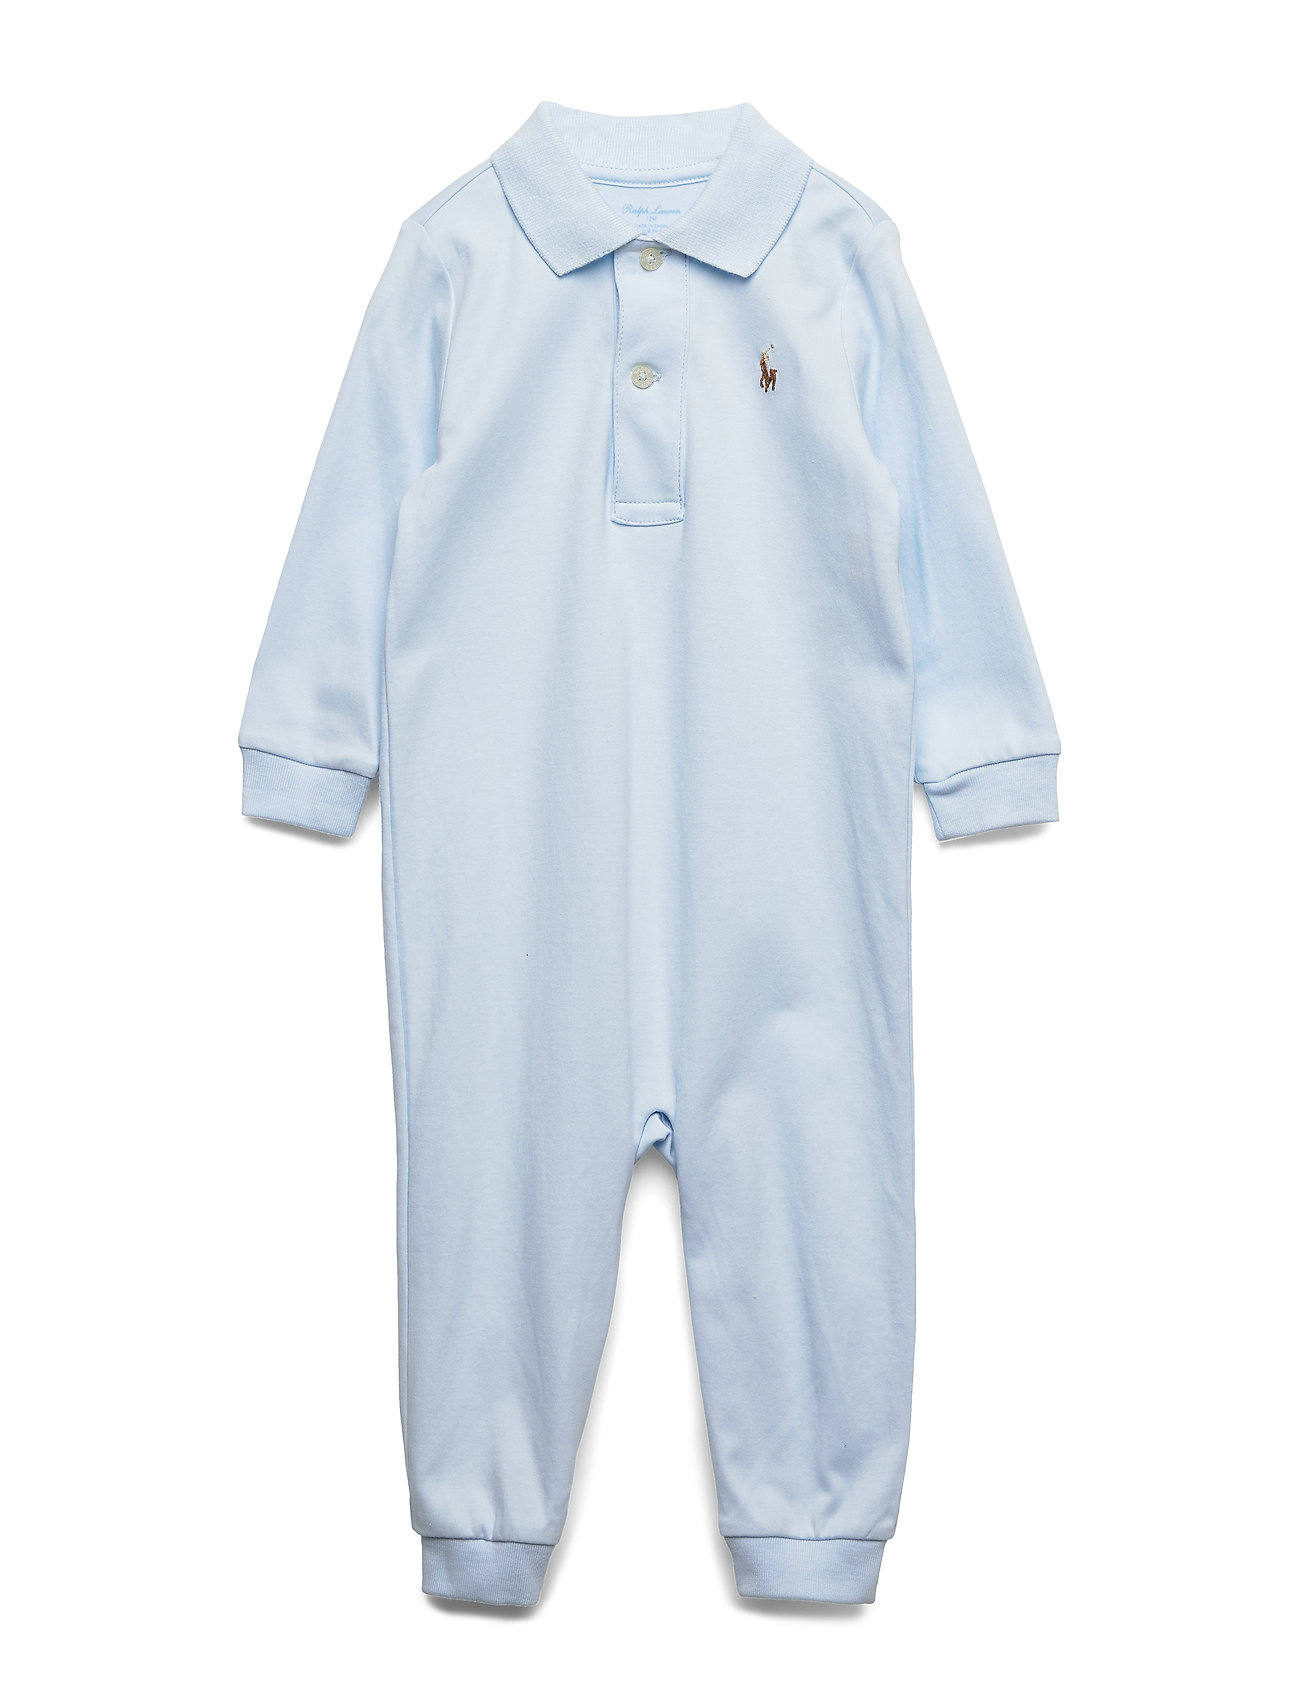 Ralph Lauren Baby POLO COVRALL-ONE PIECE-COVERALL - BERYL BLUE